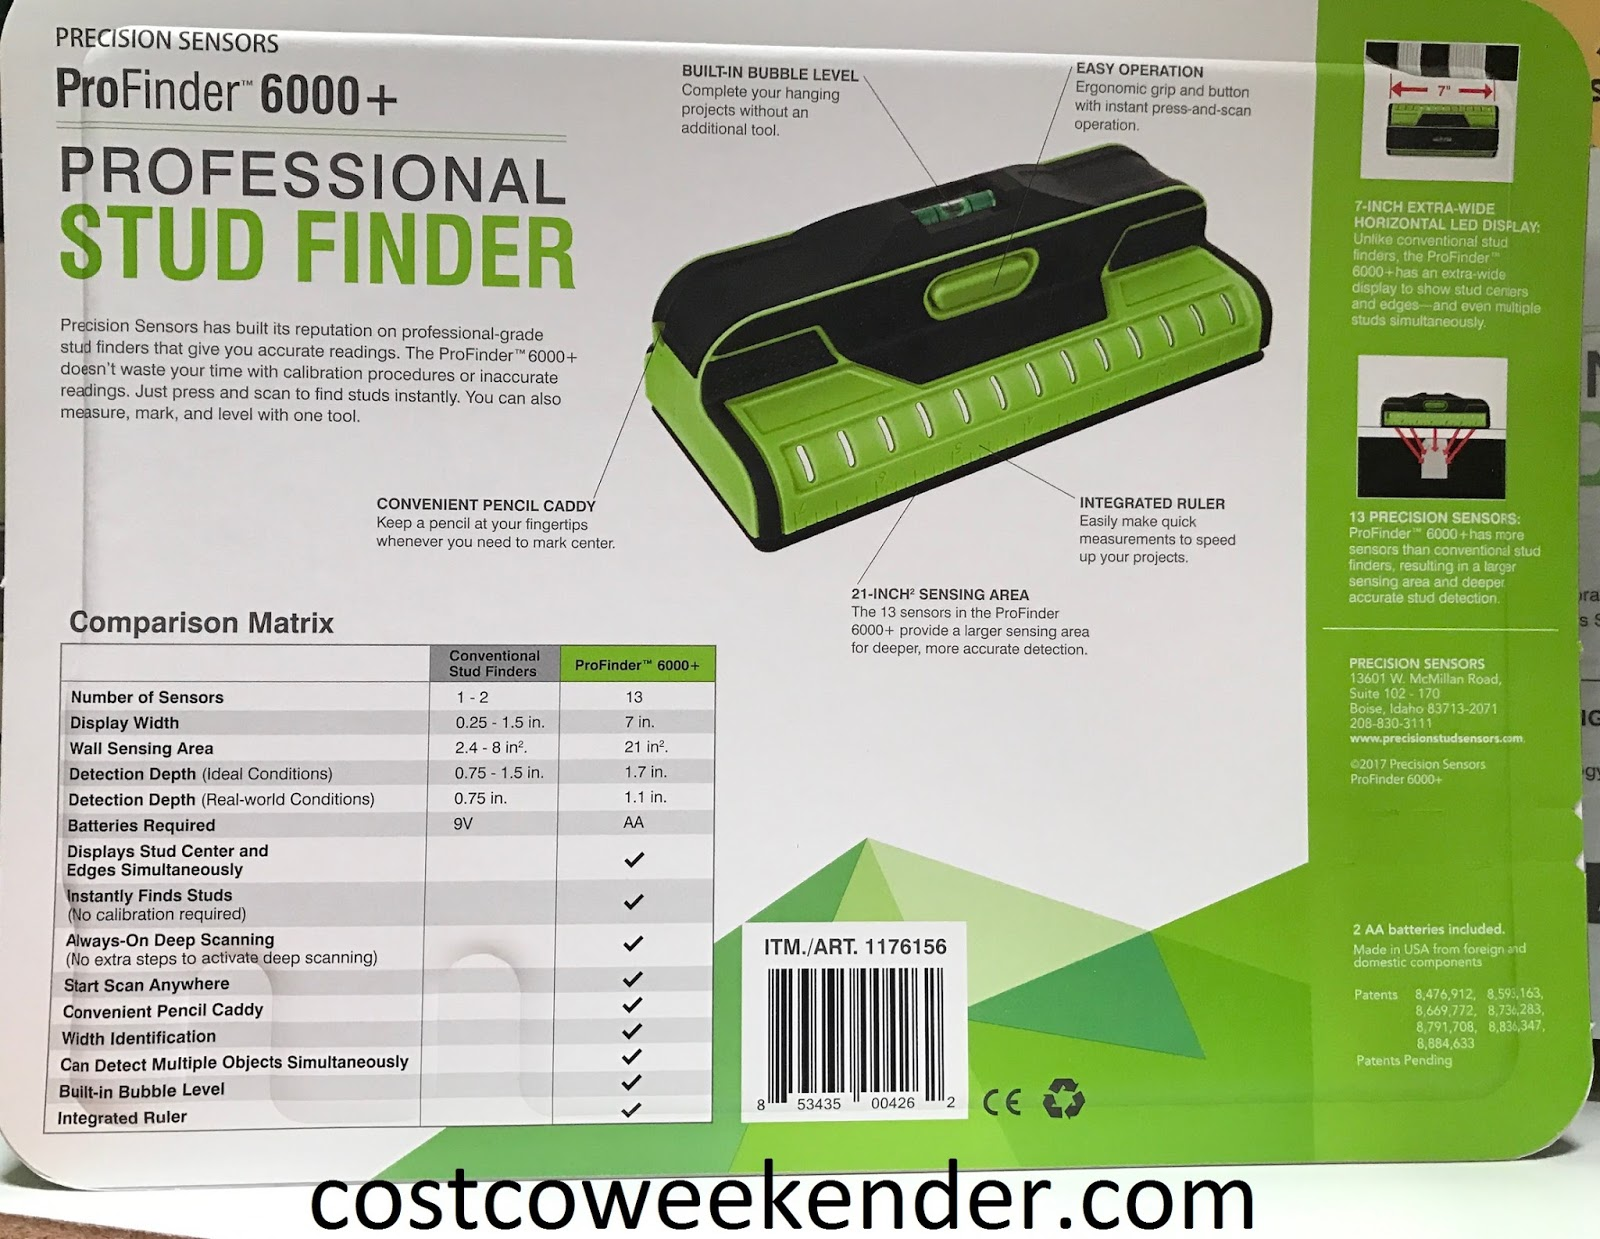 Costco 1176156 - Precision Sensors ProFinder 6000+ Professional Stud Finder: accurate deep sensing